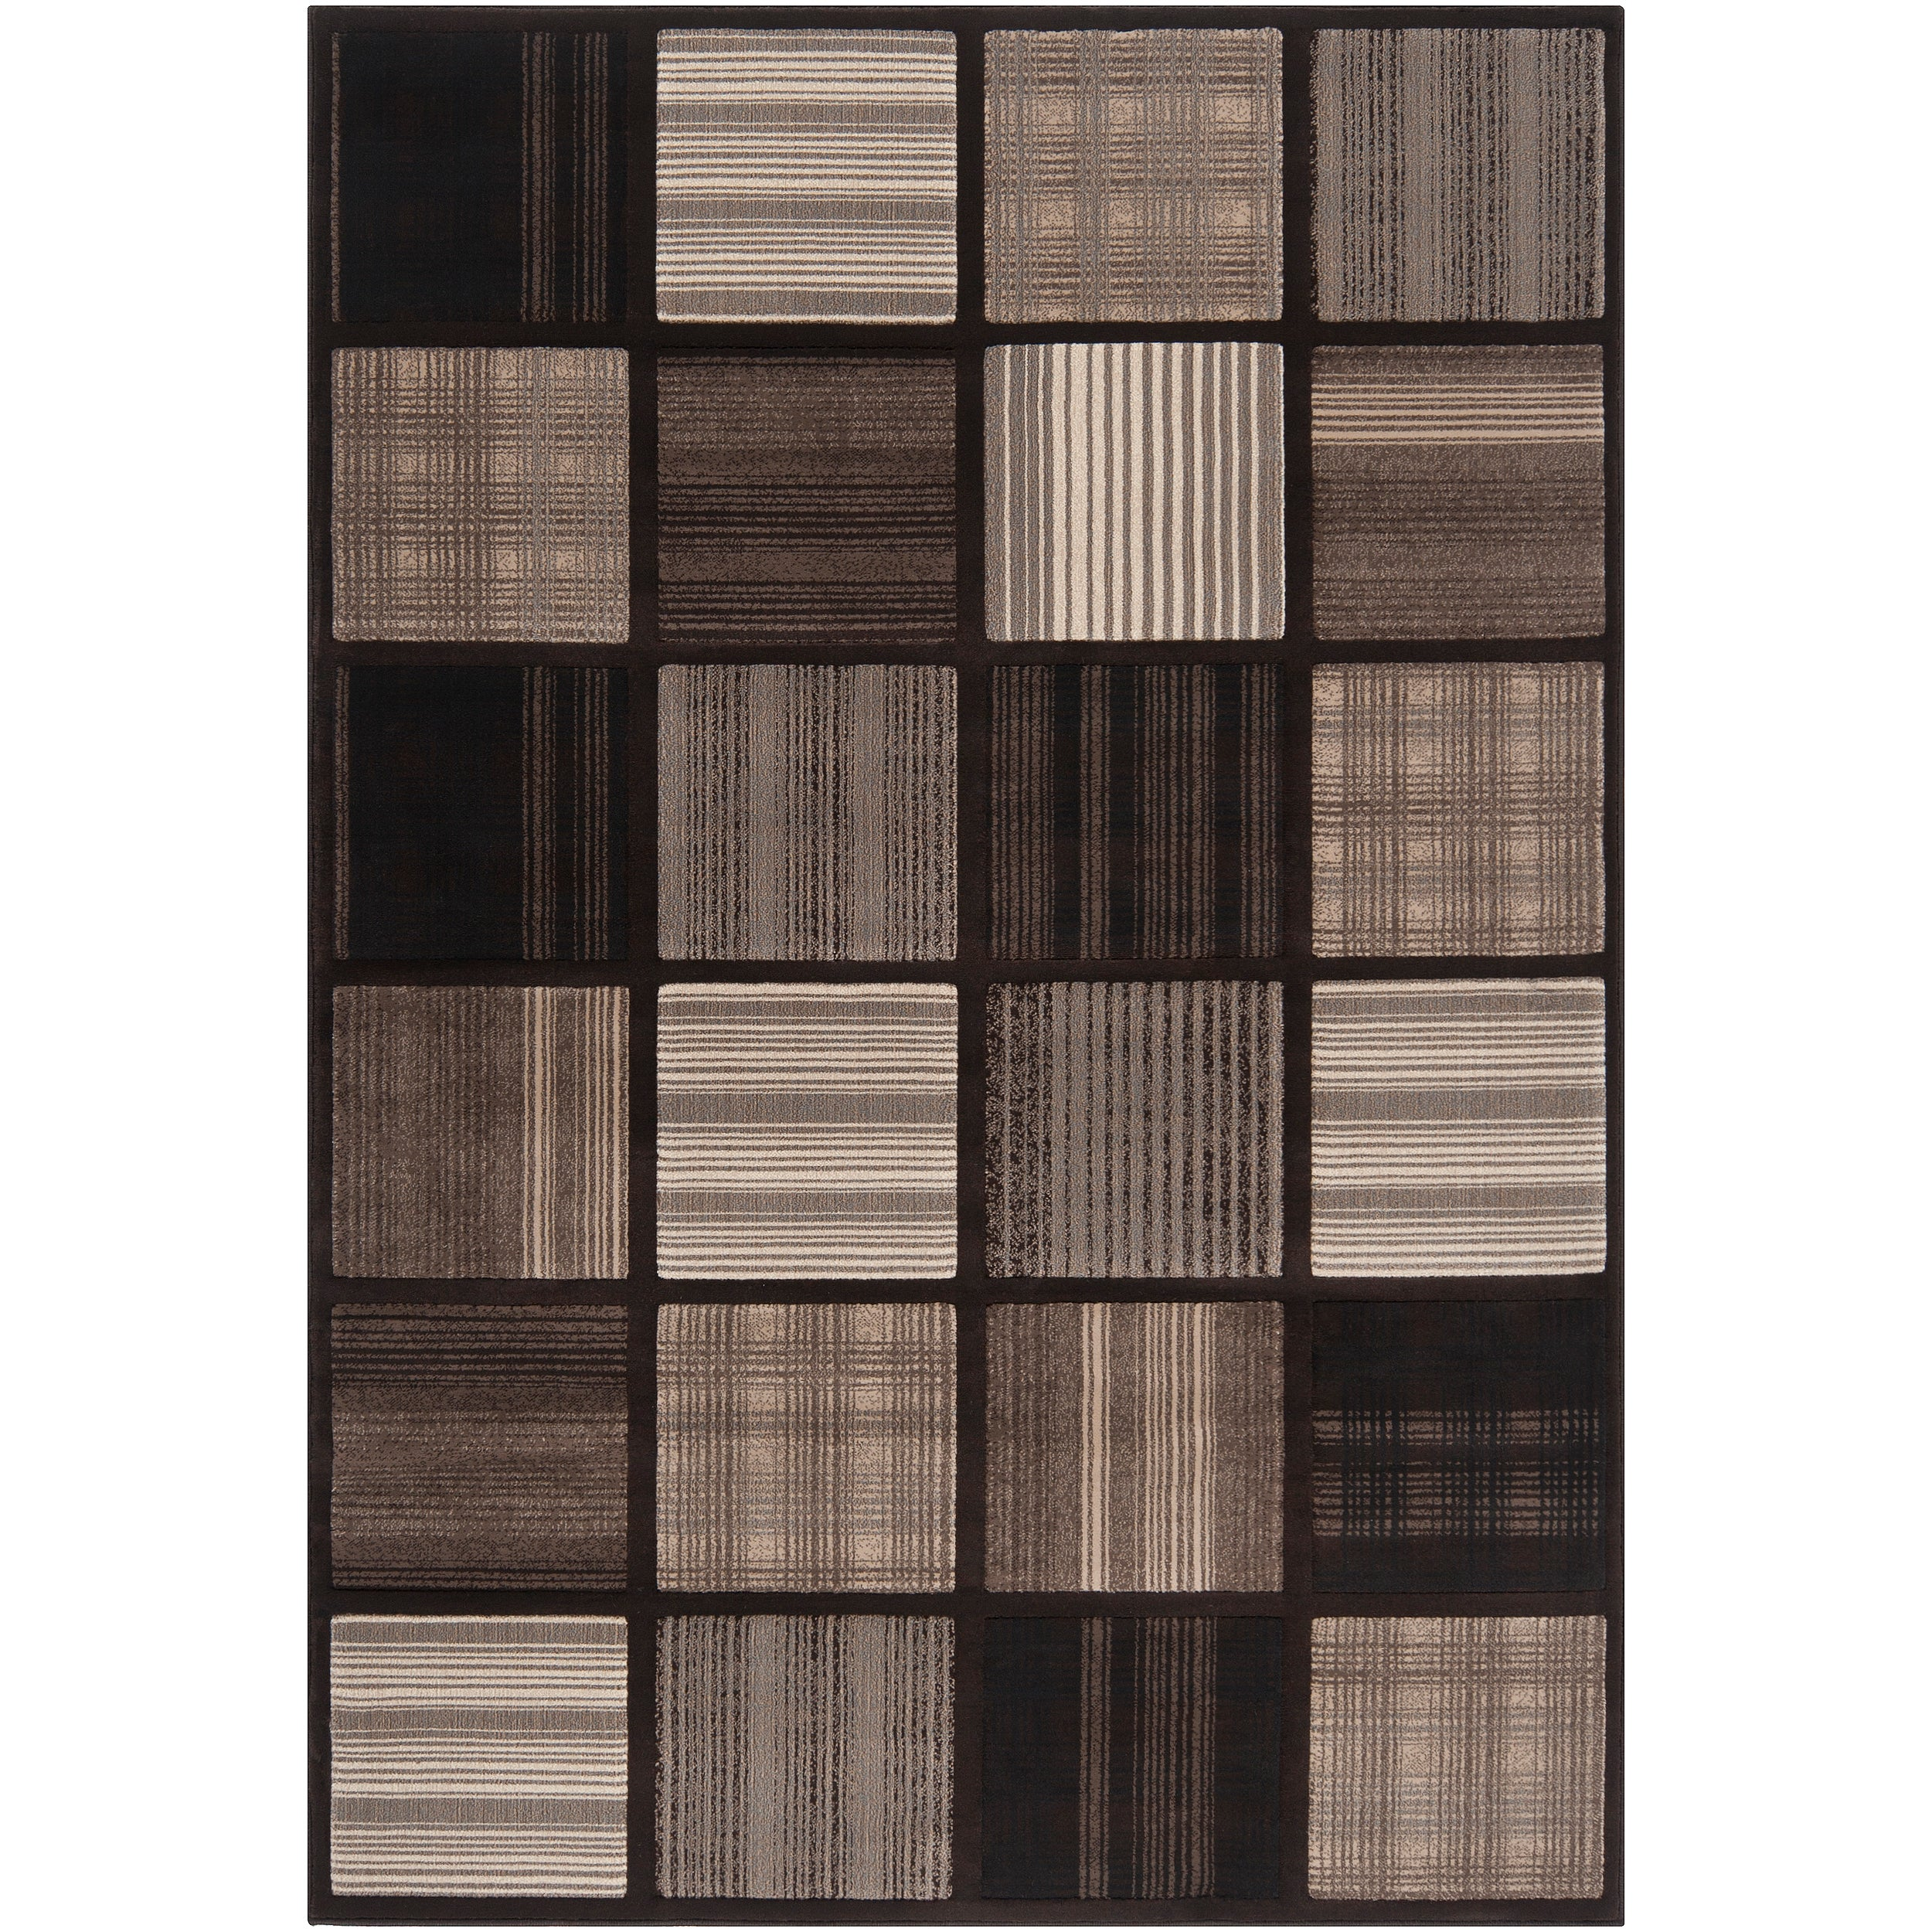 Meticulously Woven Contemporary Grey Accessory Geometric Squares Rug (7'10 x 11'2)